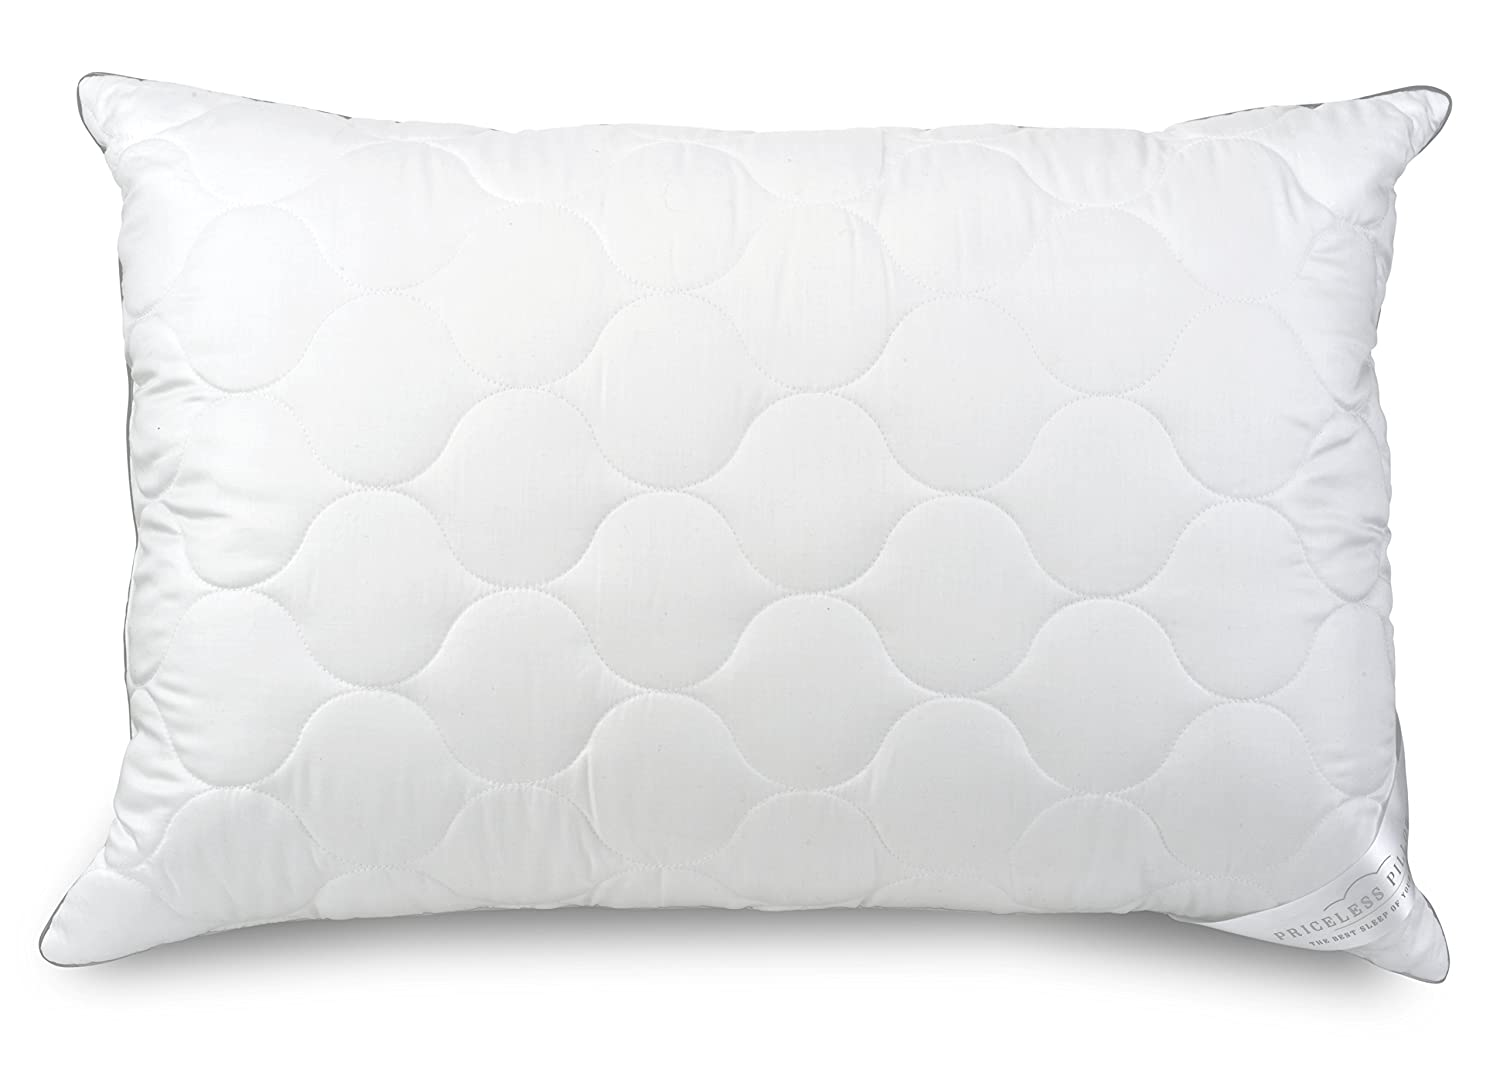 Firm Fill King Priceless Pillow   Luxury Standard Queen Sized Medium Fill Pillows   100% Tencel Fabric, Hypoallergenic, Virgin Gel Fibers, Ultra Comfortable (Medium Fill, Standard Queen - 2 Pack)